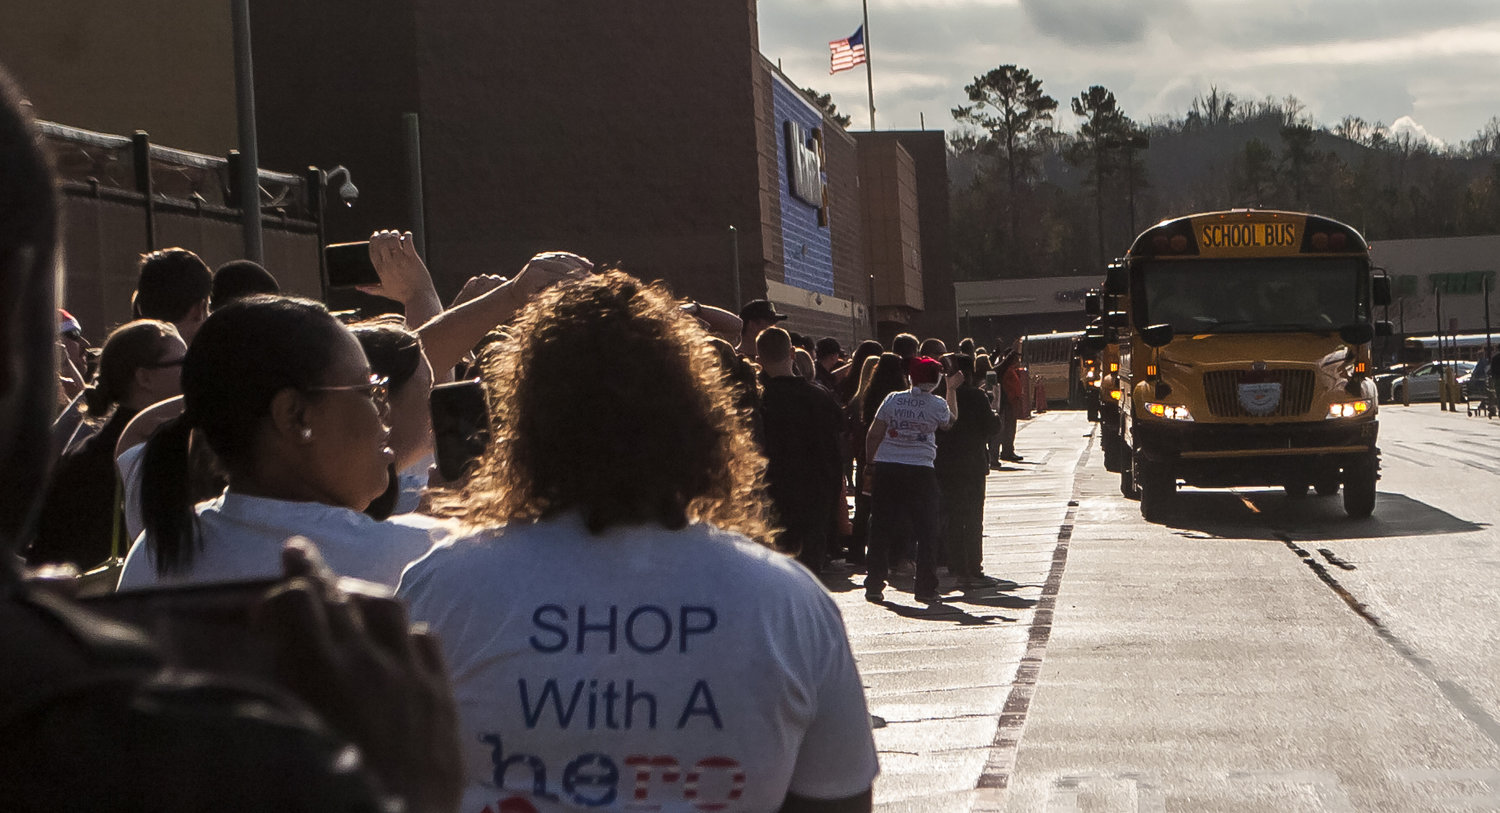 Participants in Saturday's Shop with a Hero event record the arrival of the shoppers outside Walmart.